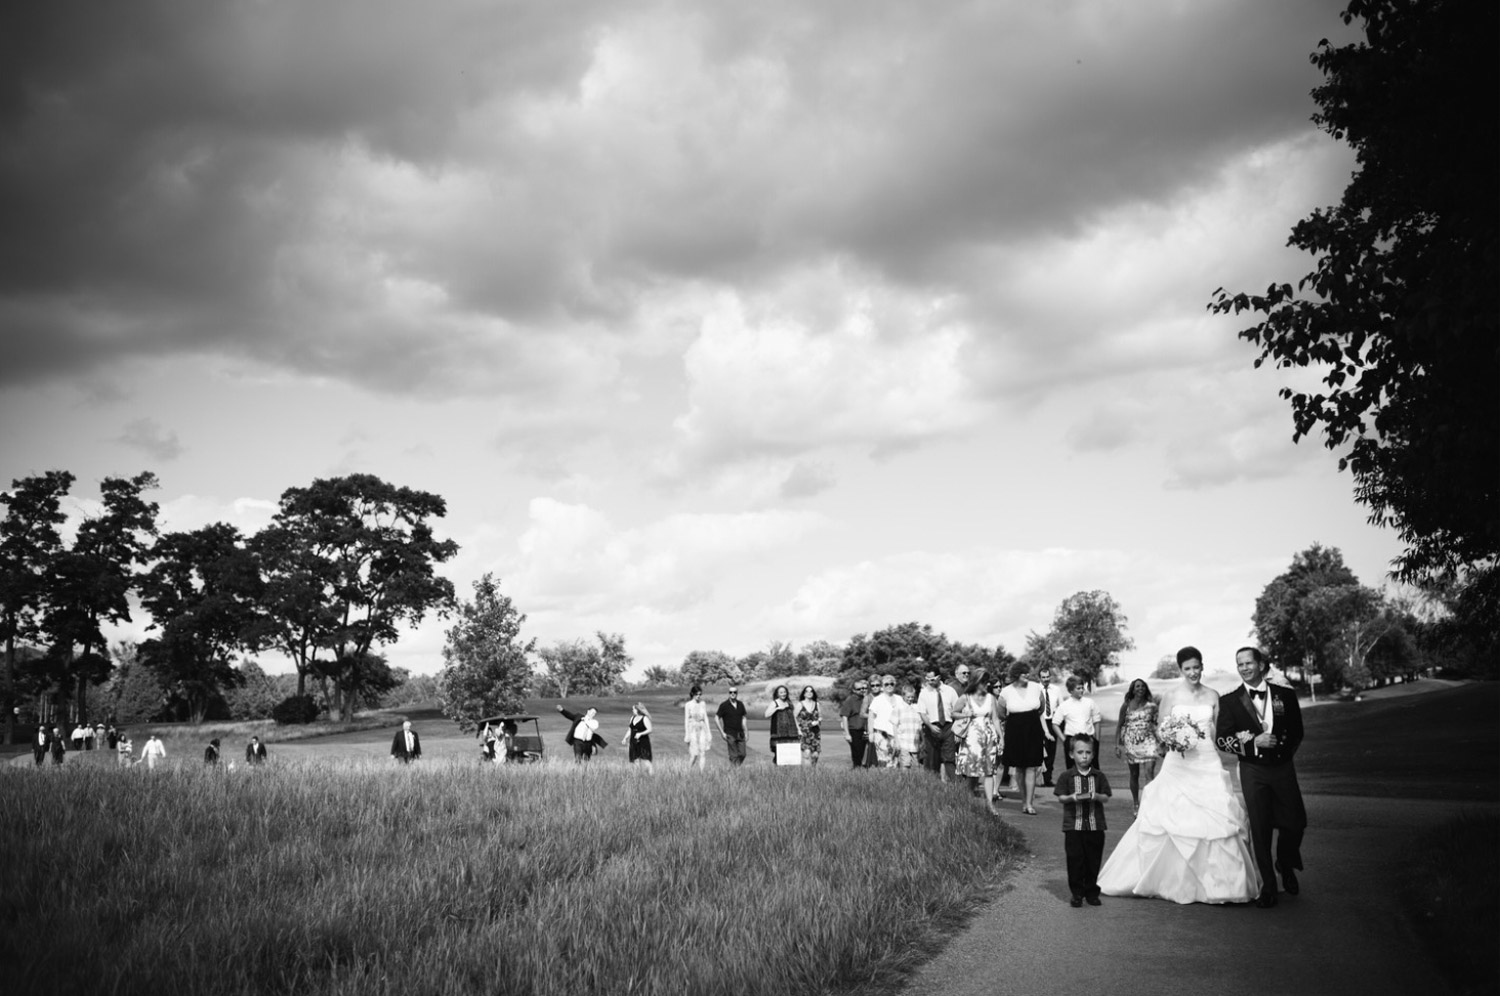 I love this image from Deborah & Joe's wedding at Wildfire Golf Club on the shores of Stoney Lake in the Kawartha region of Ontario.    We had just finished their outdoor wedding ceremony in the ruins of an old barn and Deborah + Joe were leading all their guests back to the reception.  Usually, after a ceremony it's a bit of controlled chaos as everyone is lining up to get out of the church and then getting into limo's and cars to head to the reception but here it was just a nice moment as everyone walked back and enjoyed the beautful day.